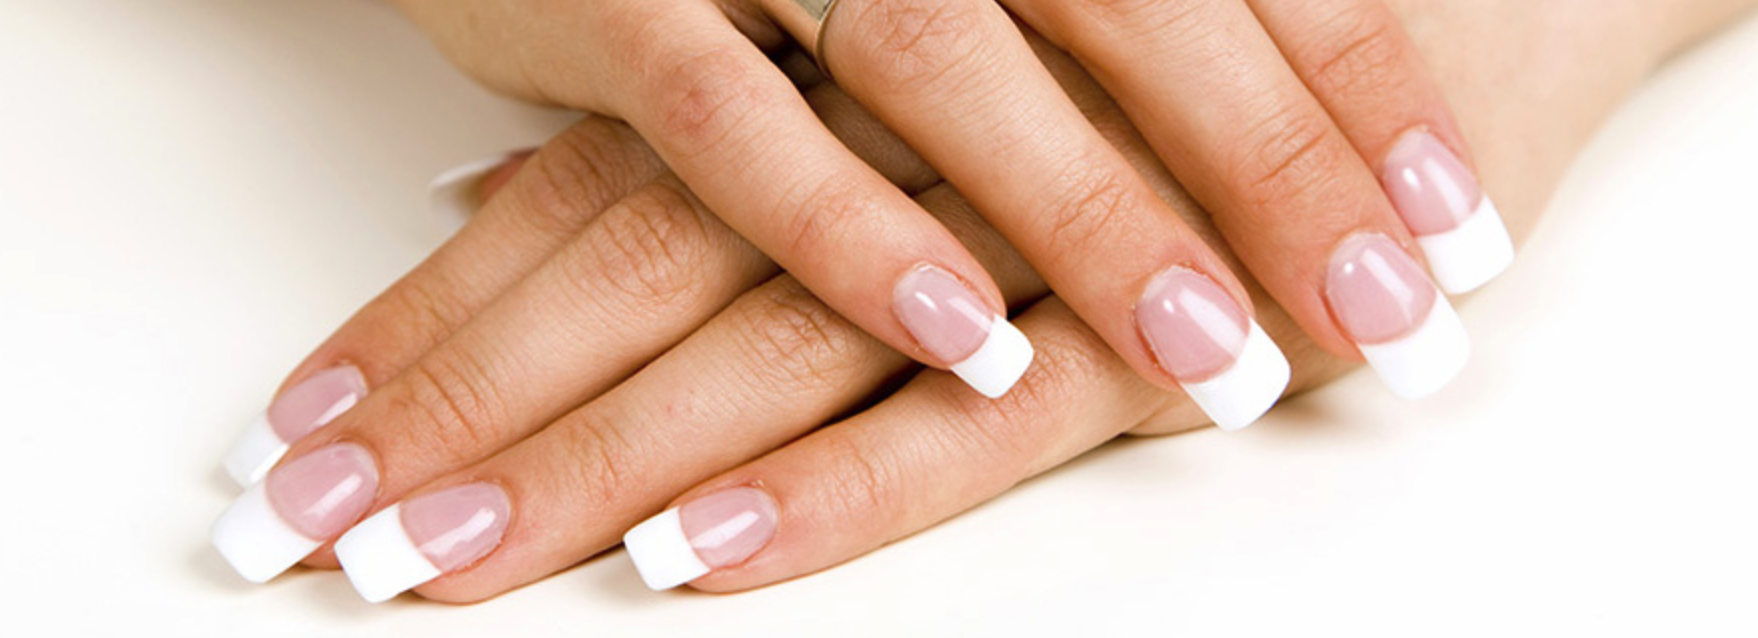 ultimate therma manicure